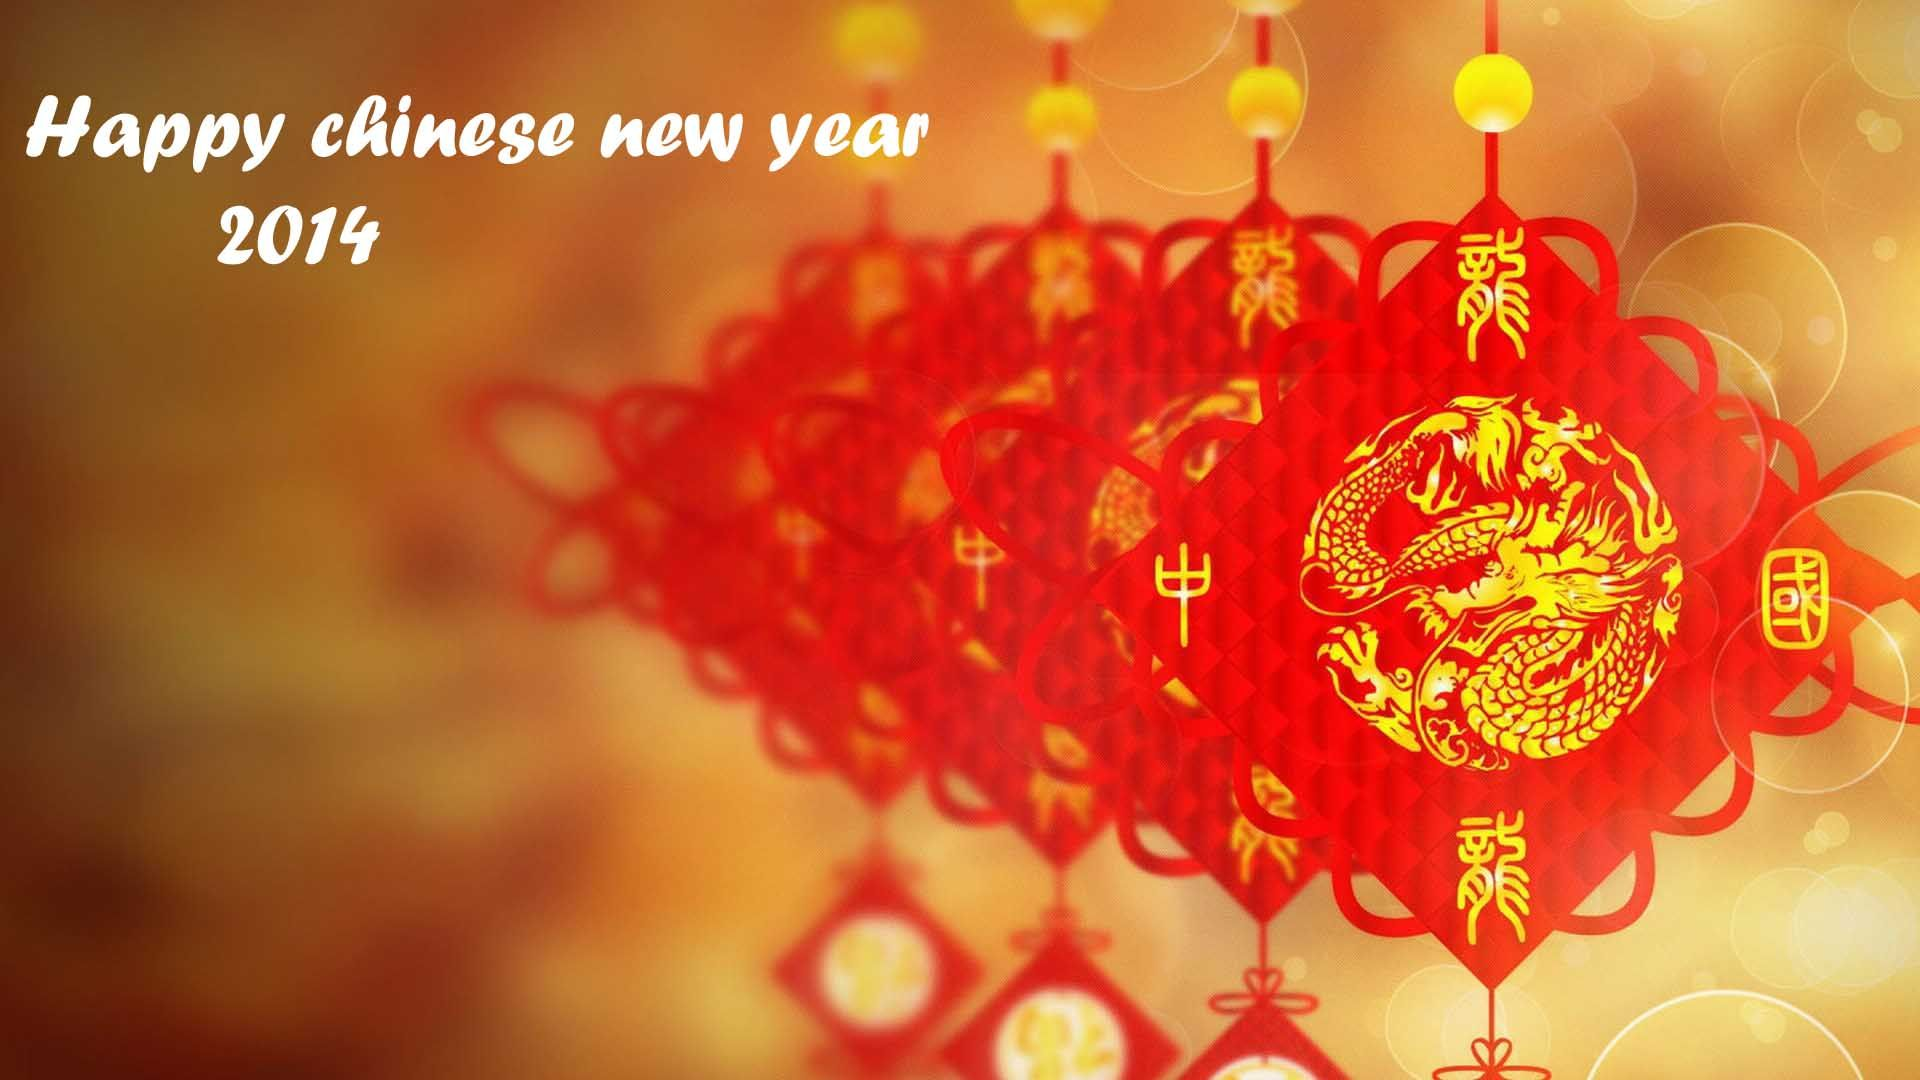 Chinese New Year Wallpaper 2014 Desktop Backgrounds High